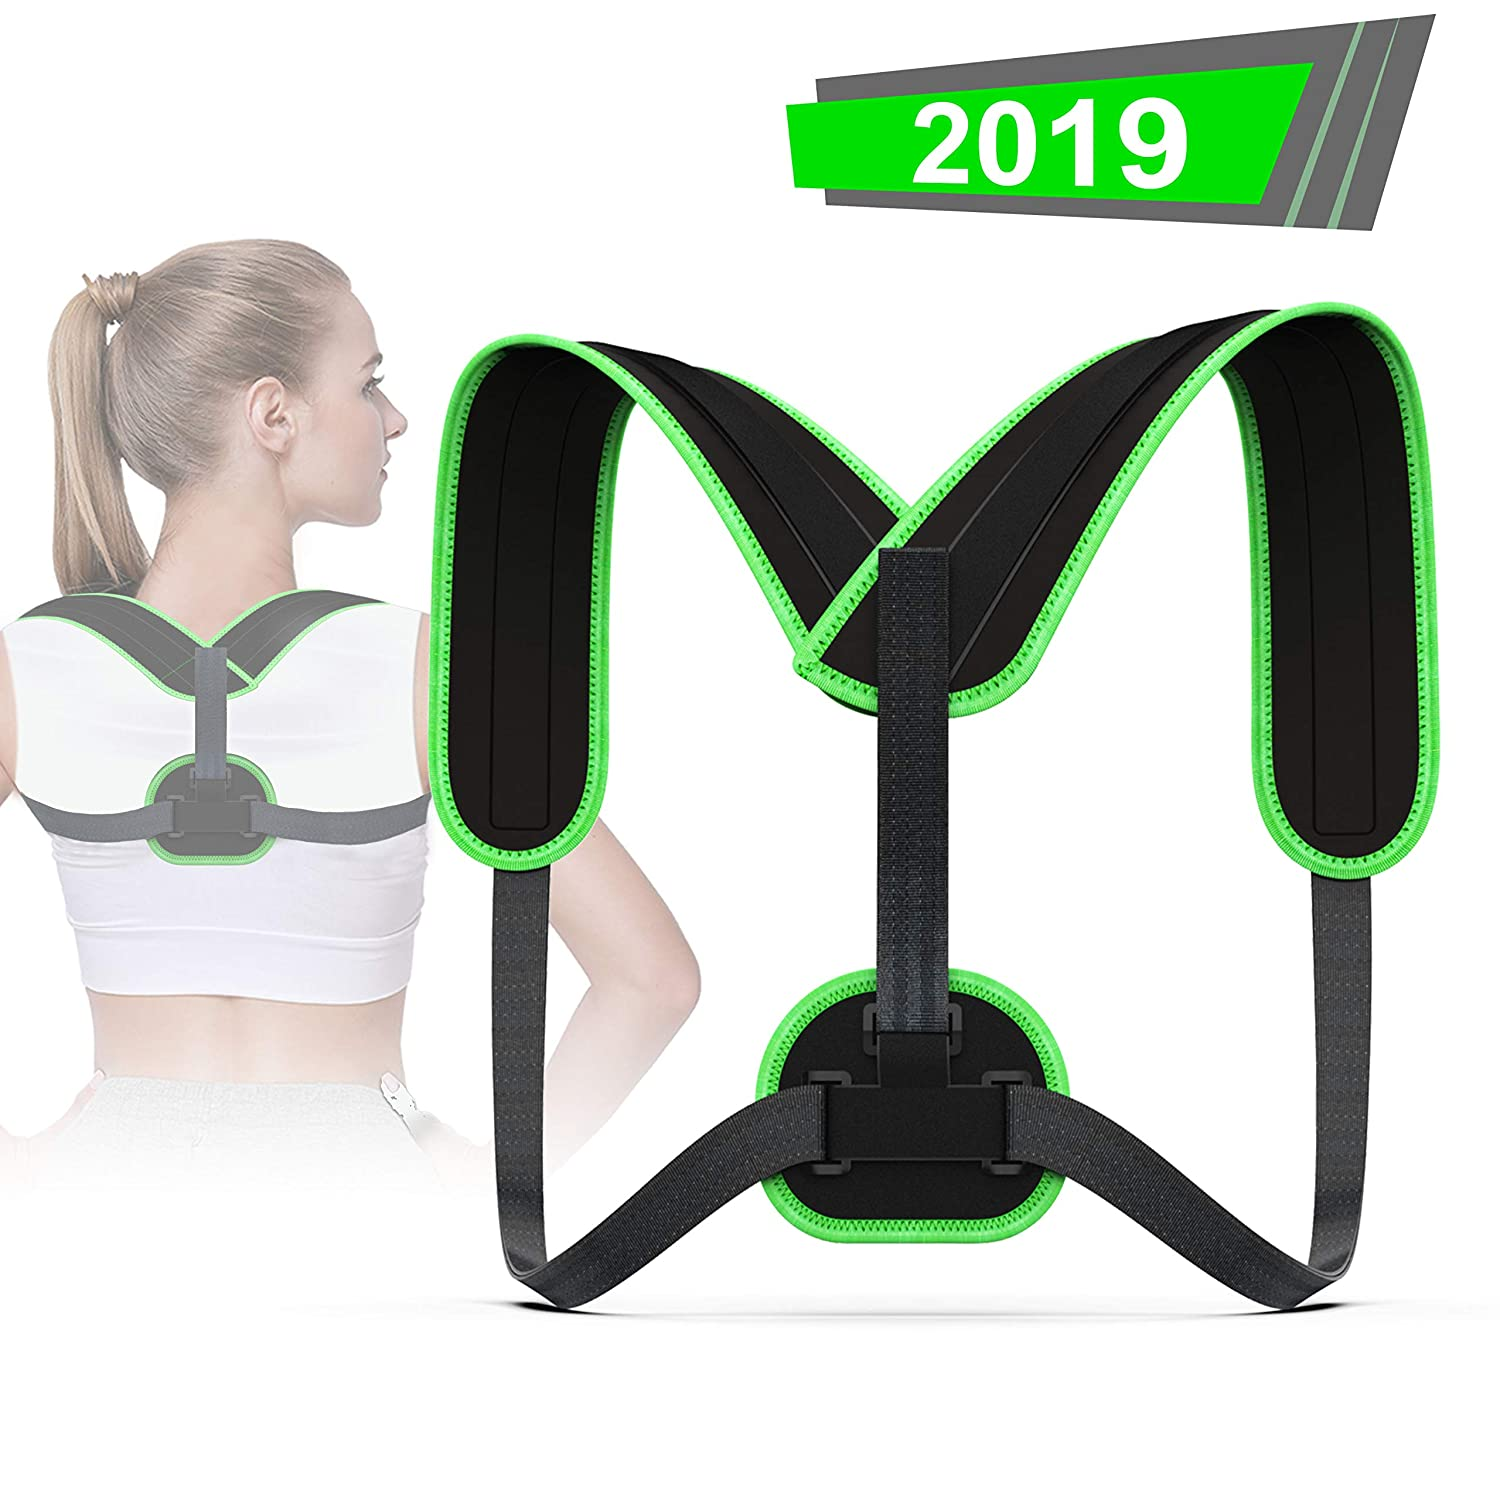 Upper Back Brace for Clavicle Support and Protecting Pain from Neck VALOIN Adjustable Back Straightener-Best Back Posture Corrector for Men and Women Back /& Shoulder ,006